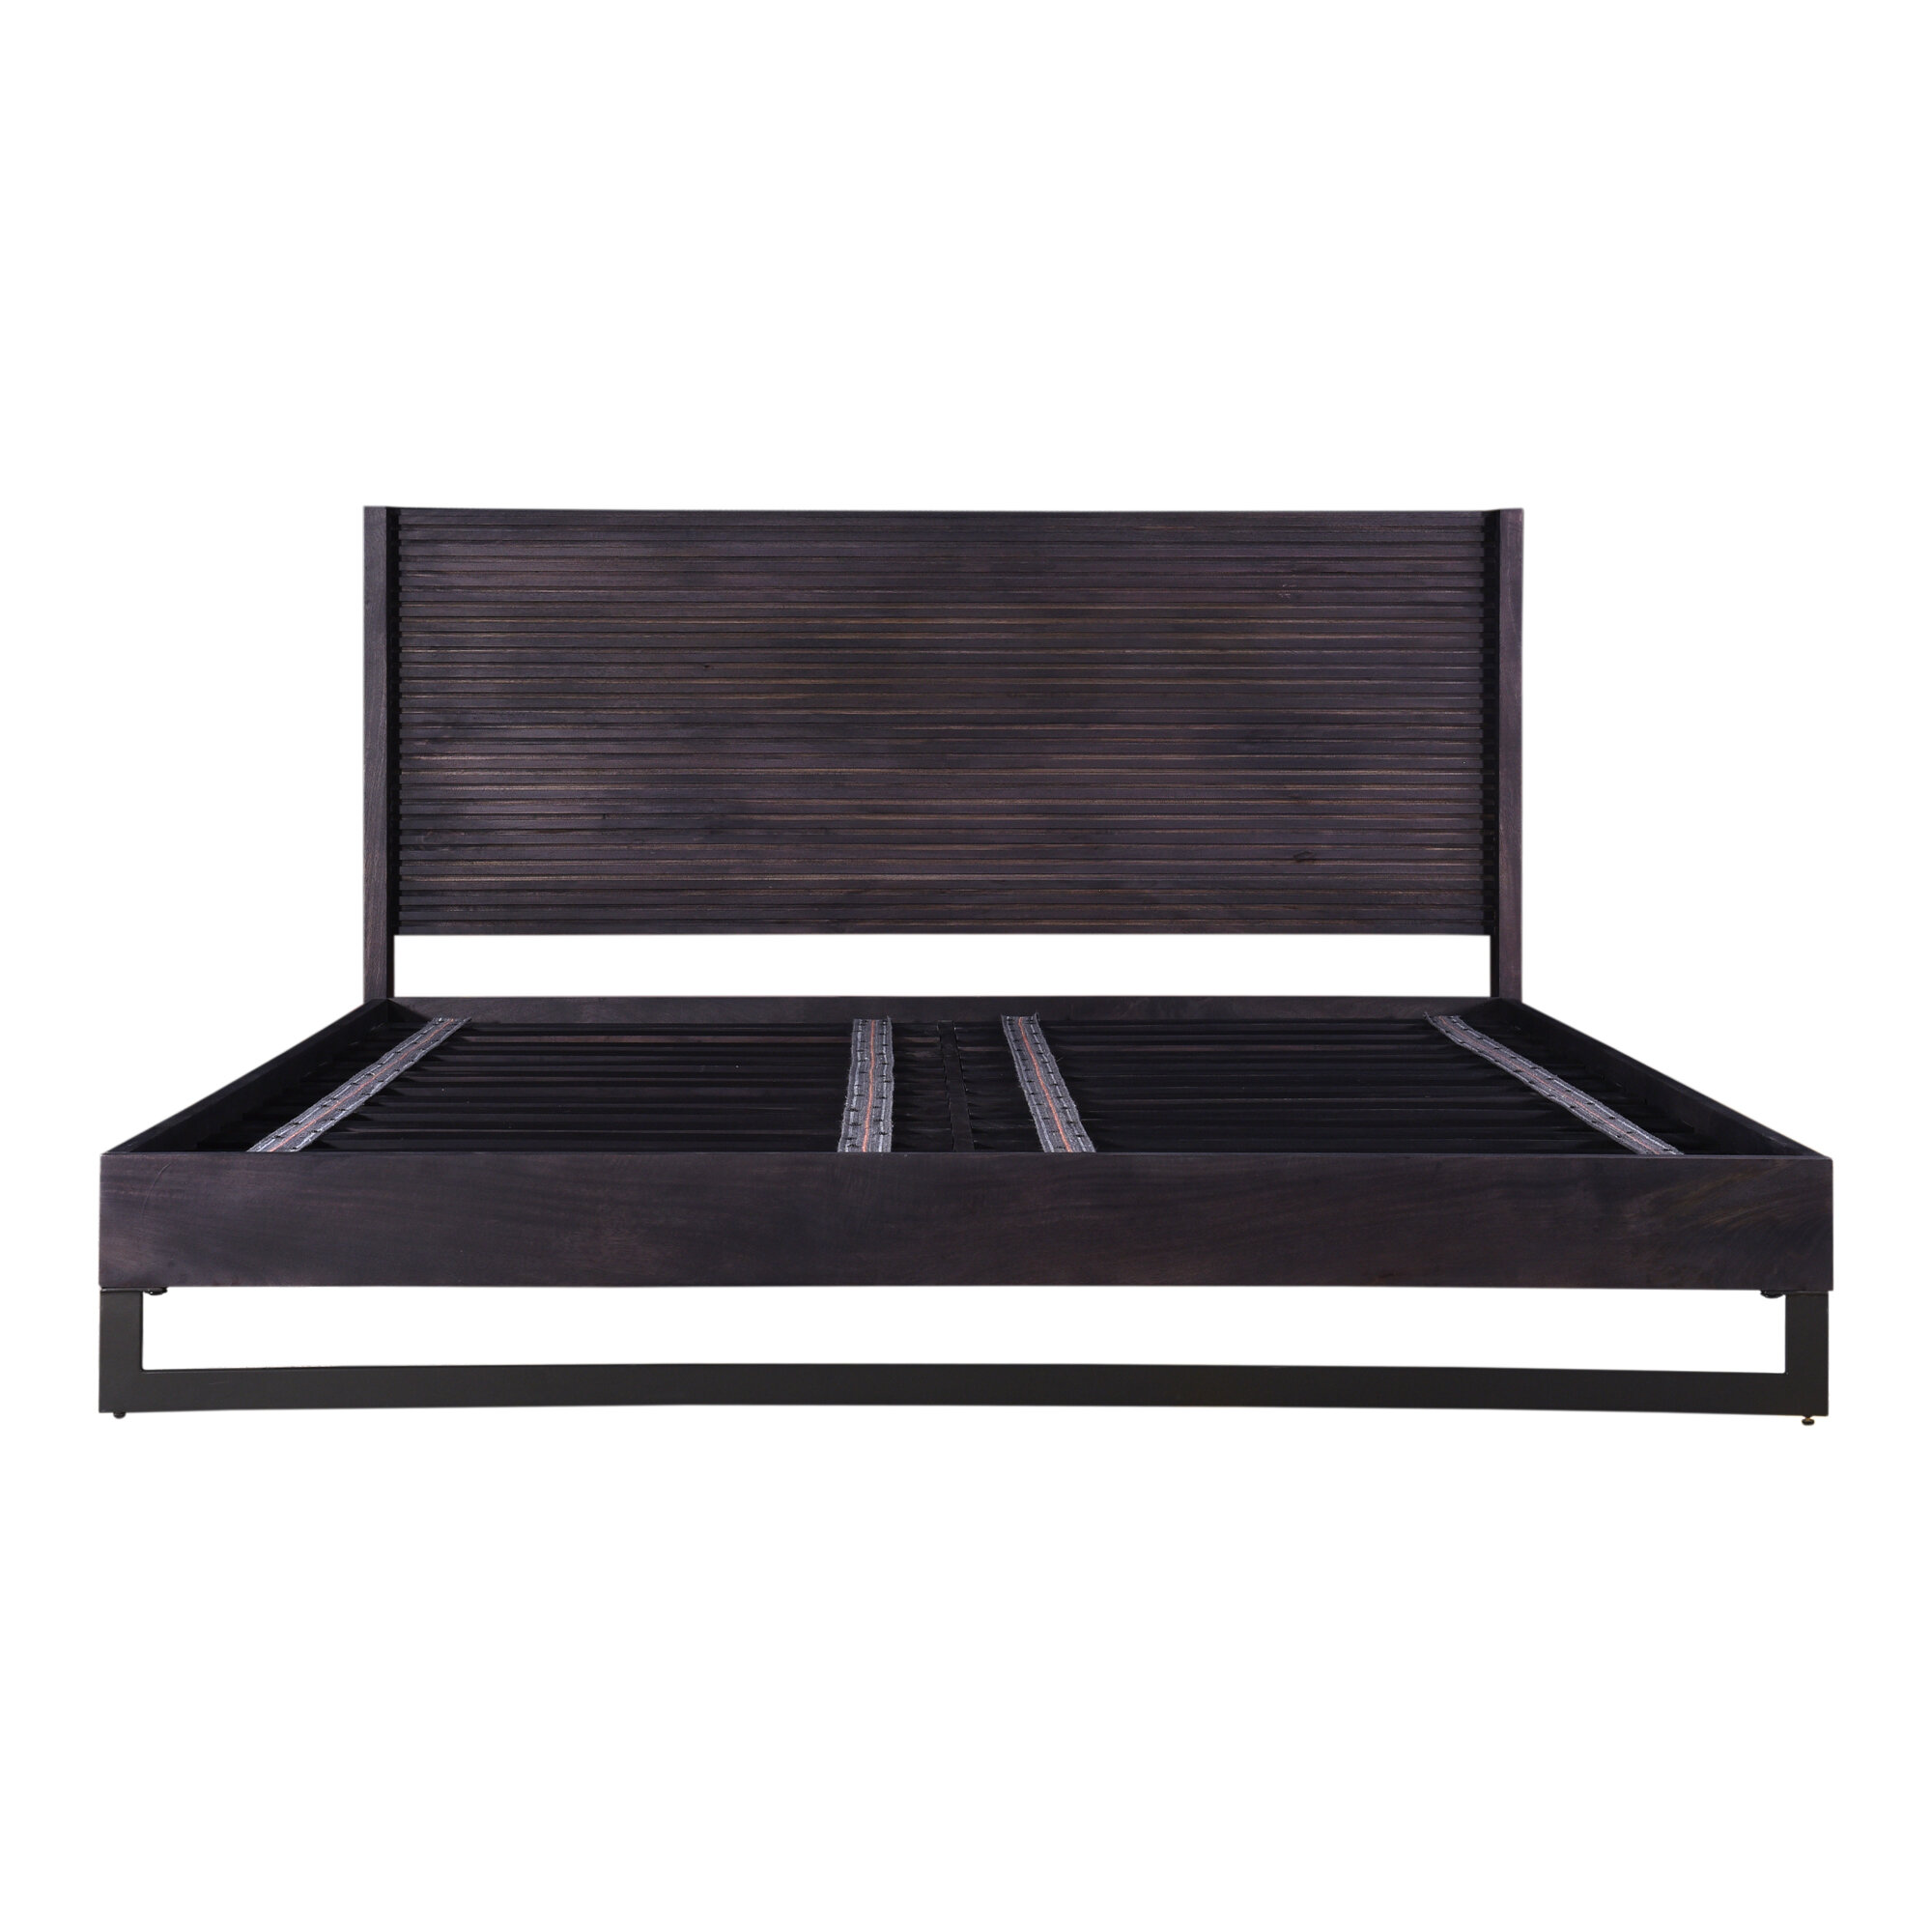 17 Stories Hammersmith King Solid Wood Low Profile Platform Bed